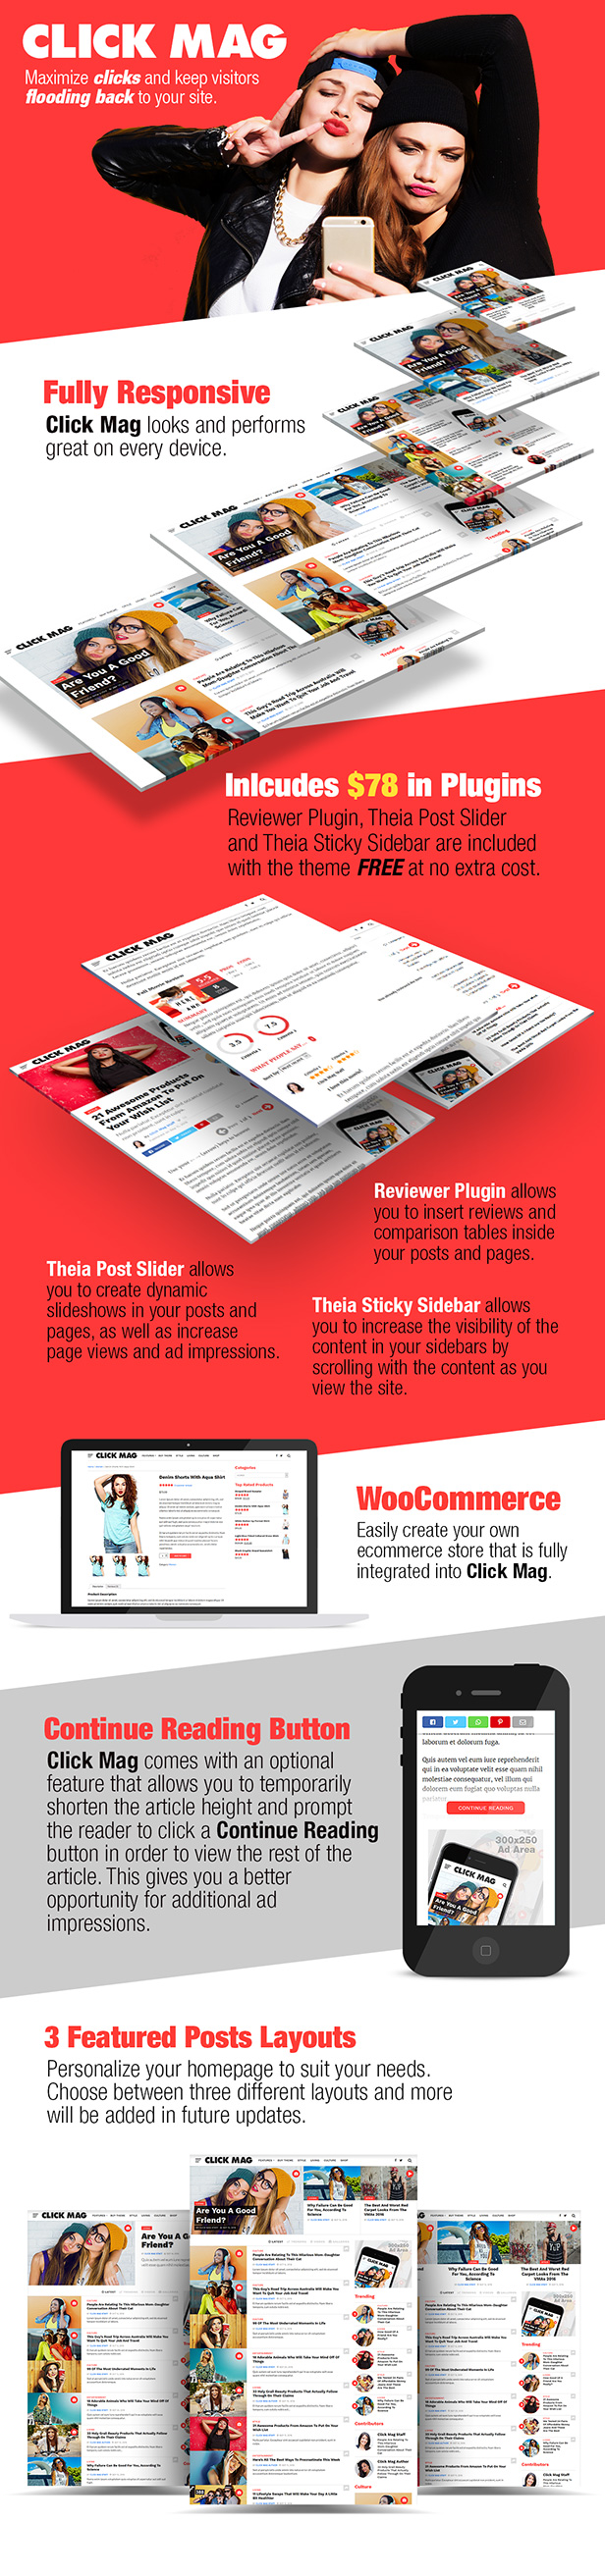 Click Mag - Viral WordPress News Magazine/Blog Theme - 1